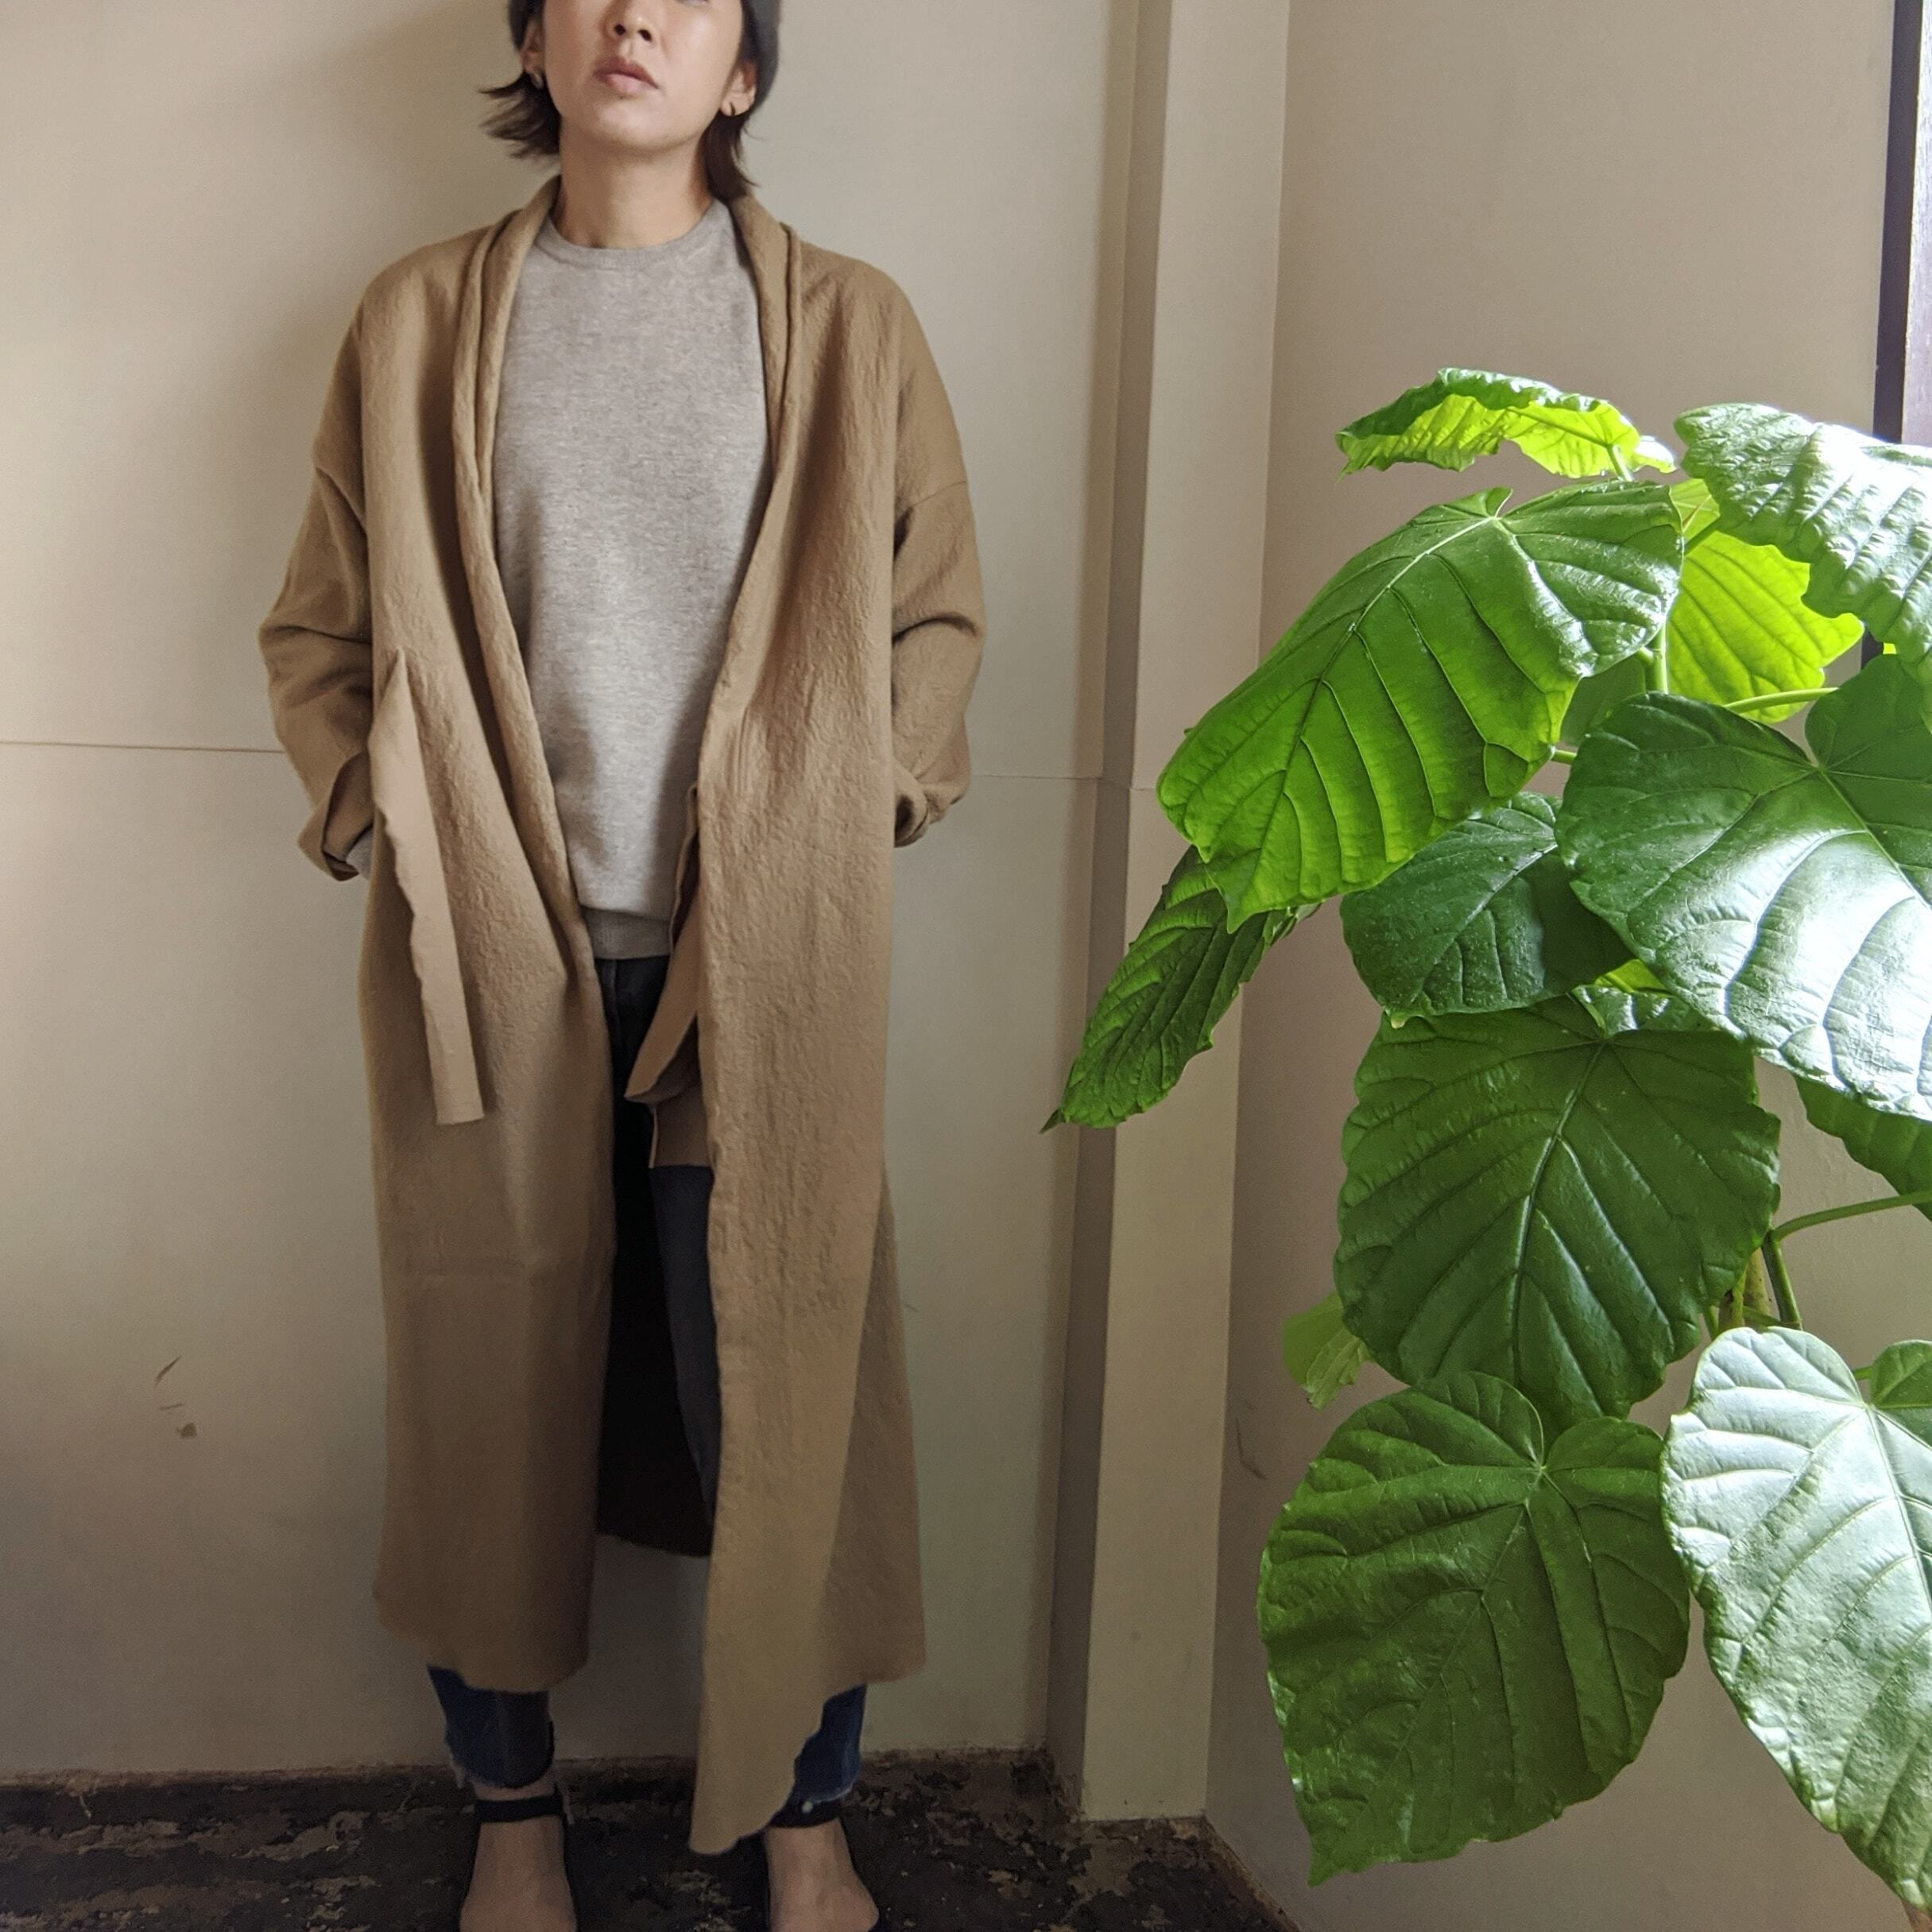 【 habille 】 gown coat / compressed wool / 圧縮ウール / ウールコート / DARK BEIGE